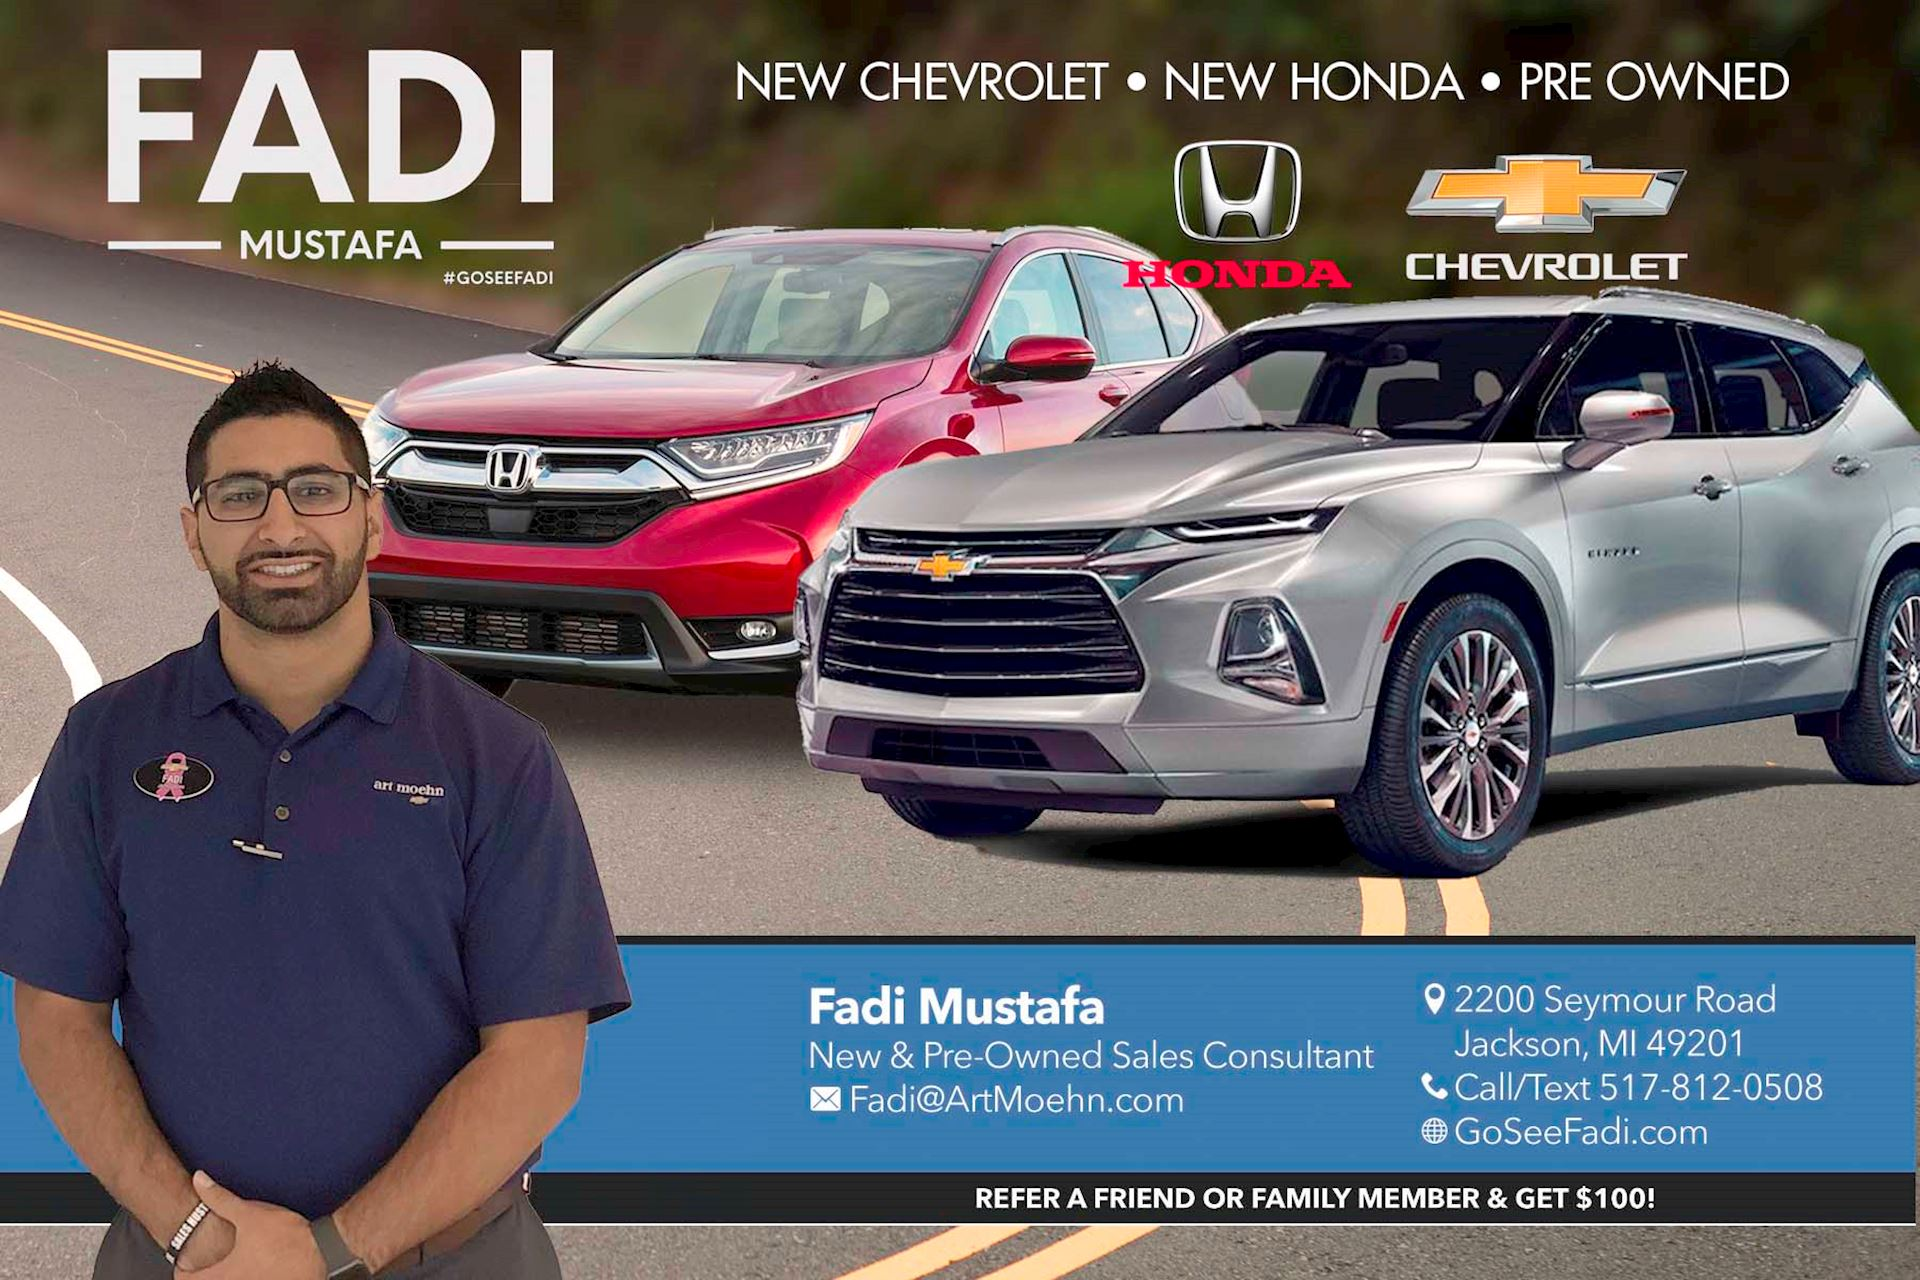 Customer Review Of Fadi Mustafa By Duane Senecal Art Moehn Chevrolet Honda